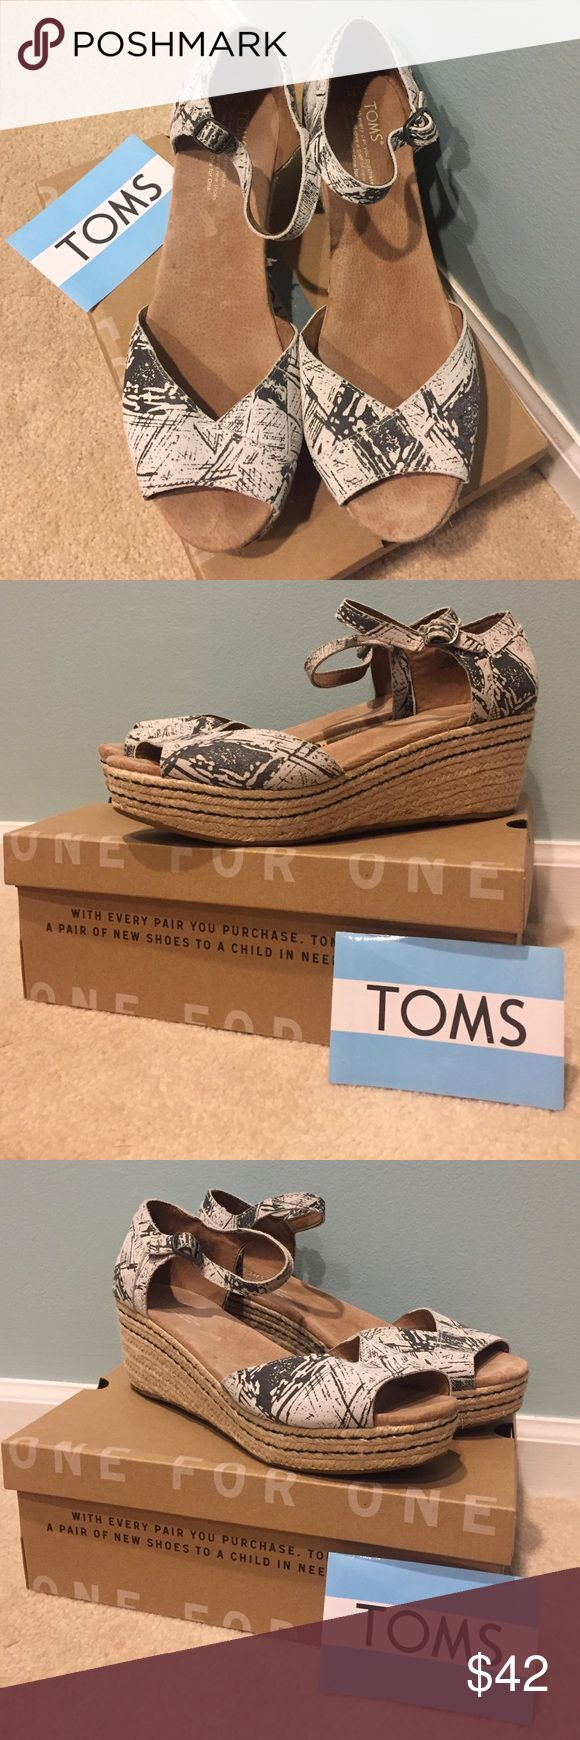 TOMS espadrilles platform wedge sandals Complete with box and TOMS sticker!  Worn 2 or 3 times.  Very cute with skinny jeans. TOMS Shoes Espadrilles